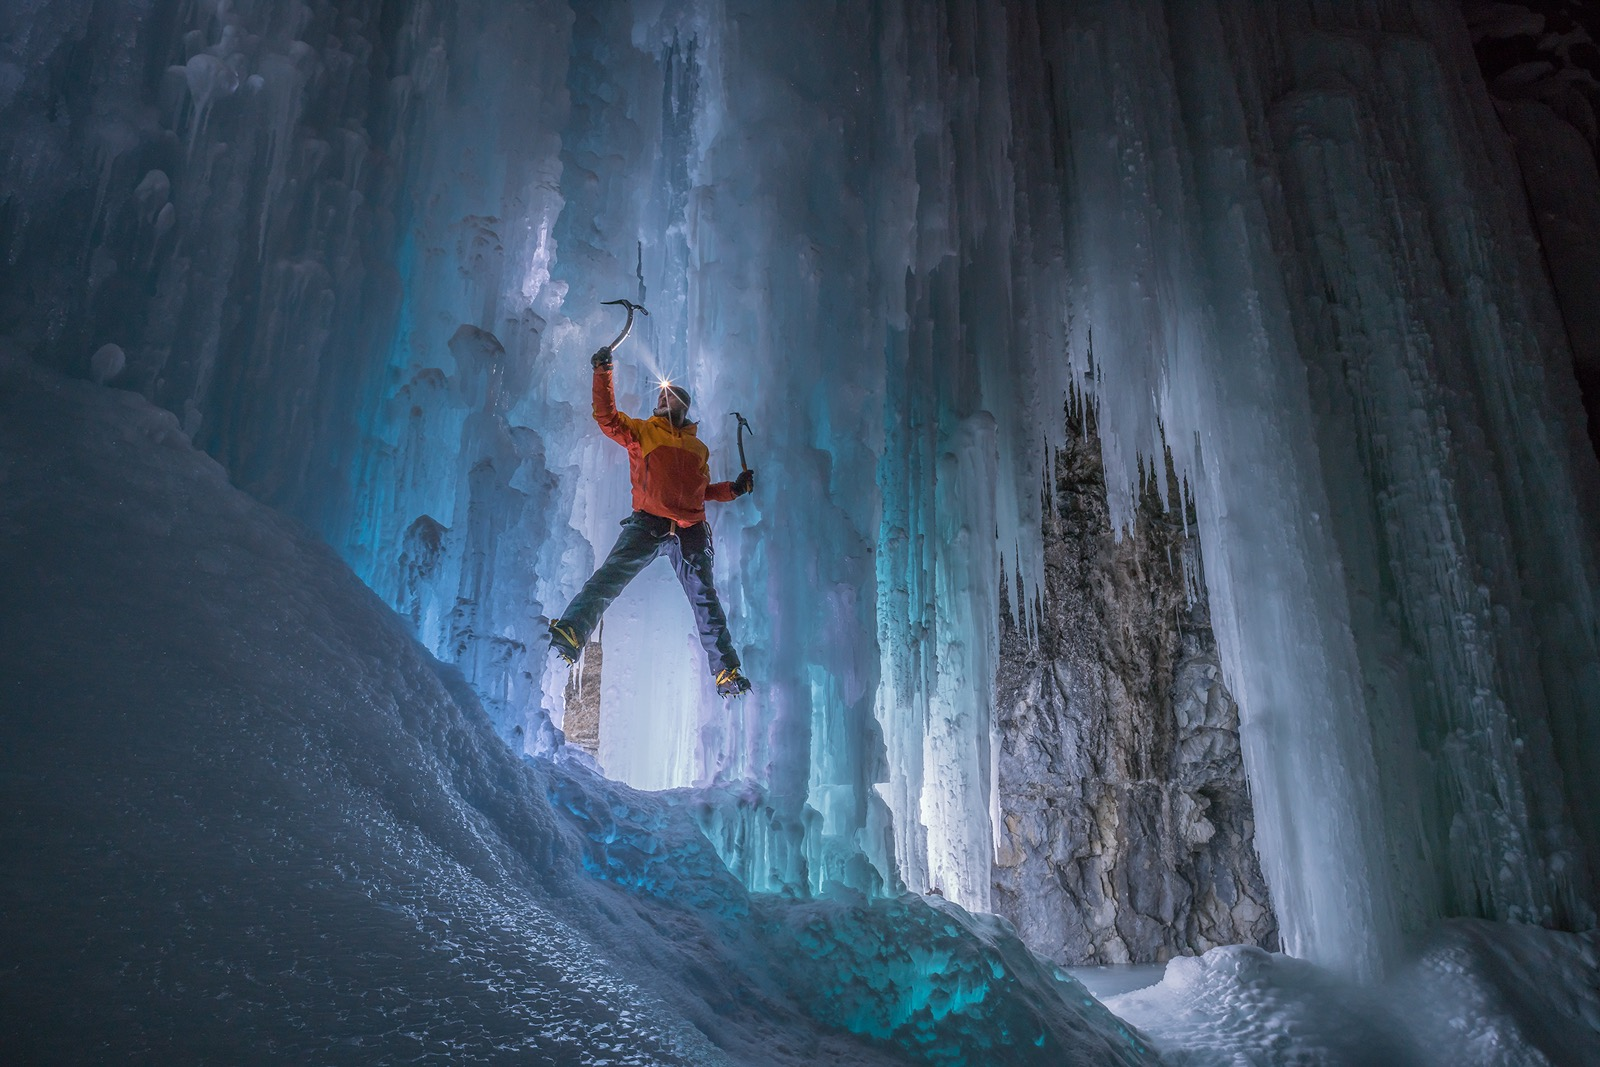 Haffner Creek ice climbing by Rachel Jones Ross